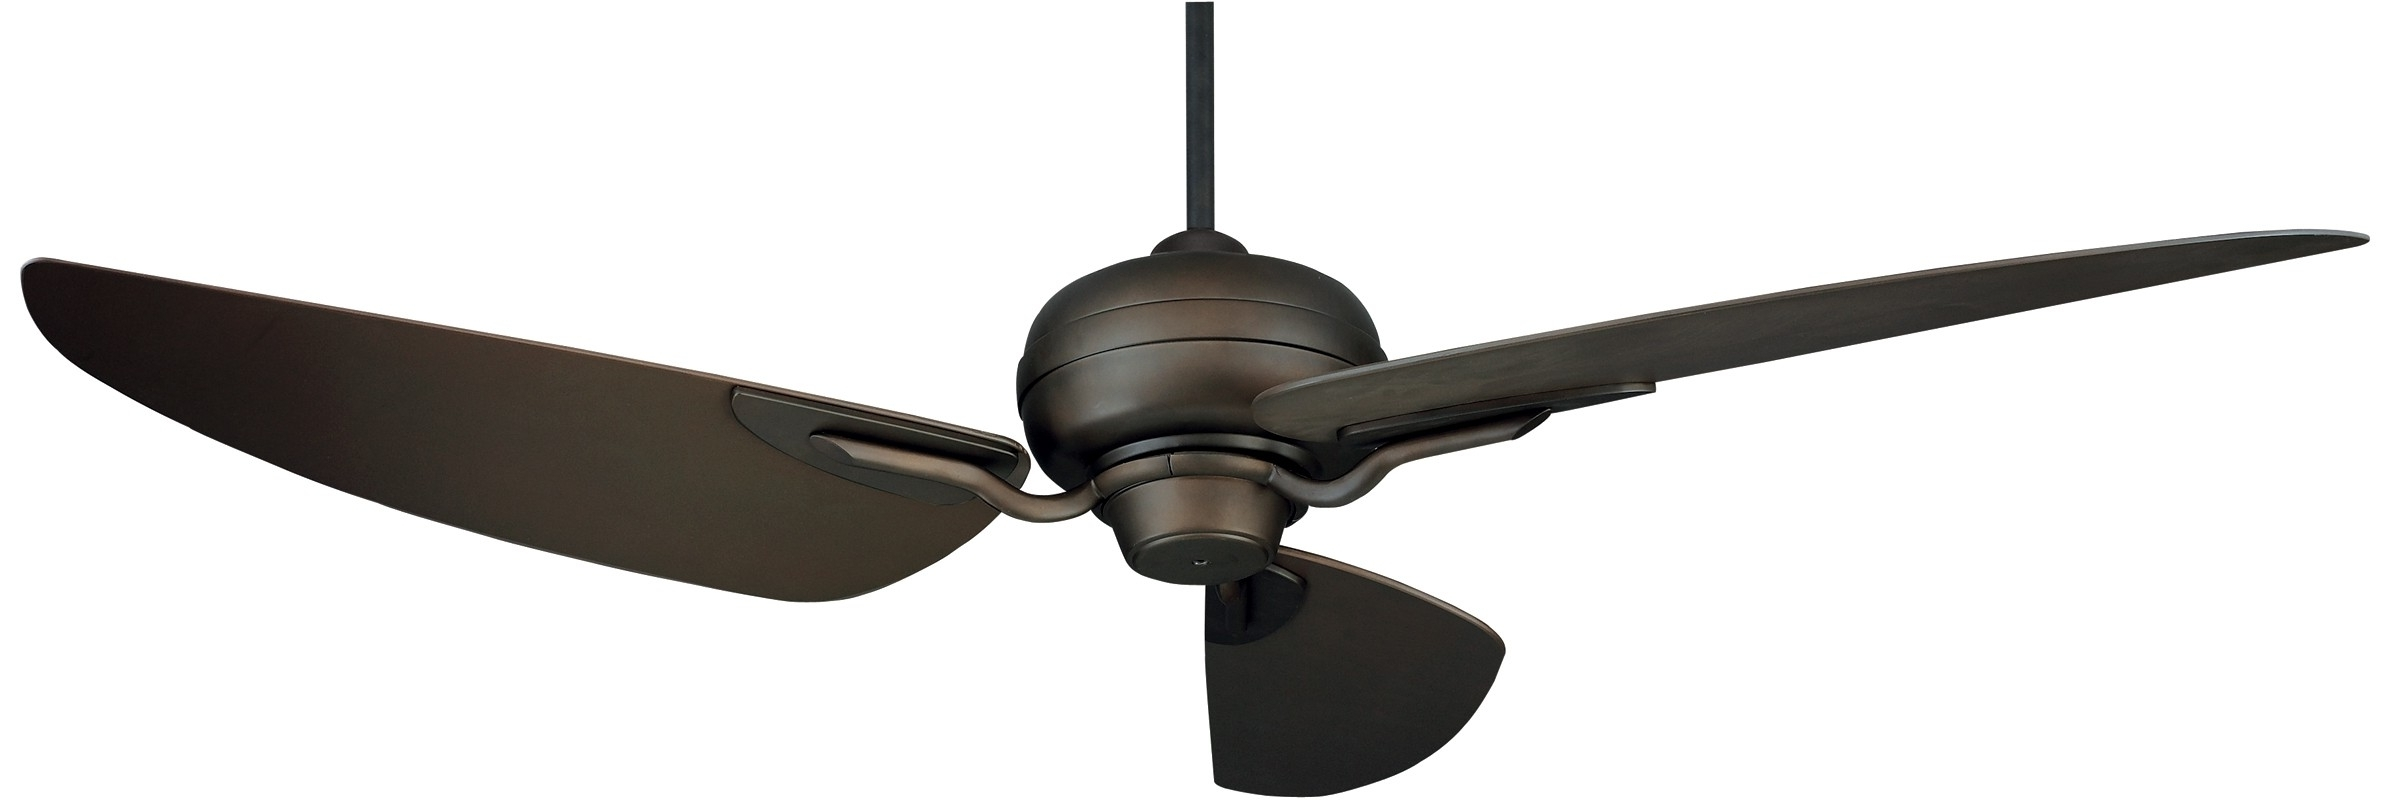 Most Recent Outdoor Ceiling Fans For Wet Locations Throughout Bimini (wet Location), Best Outdoor Ceiling Fans – Cliff Drive (View 3 of 20)